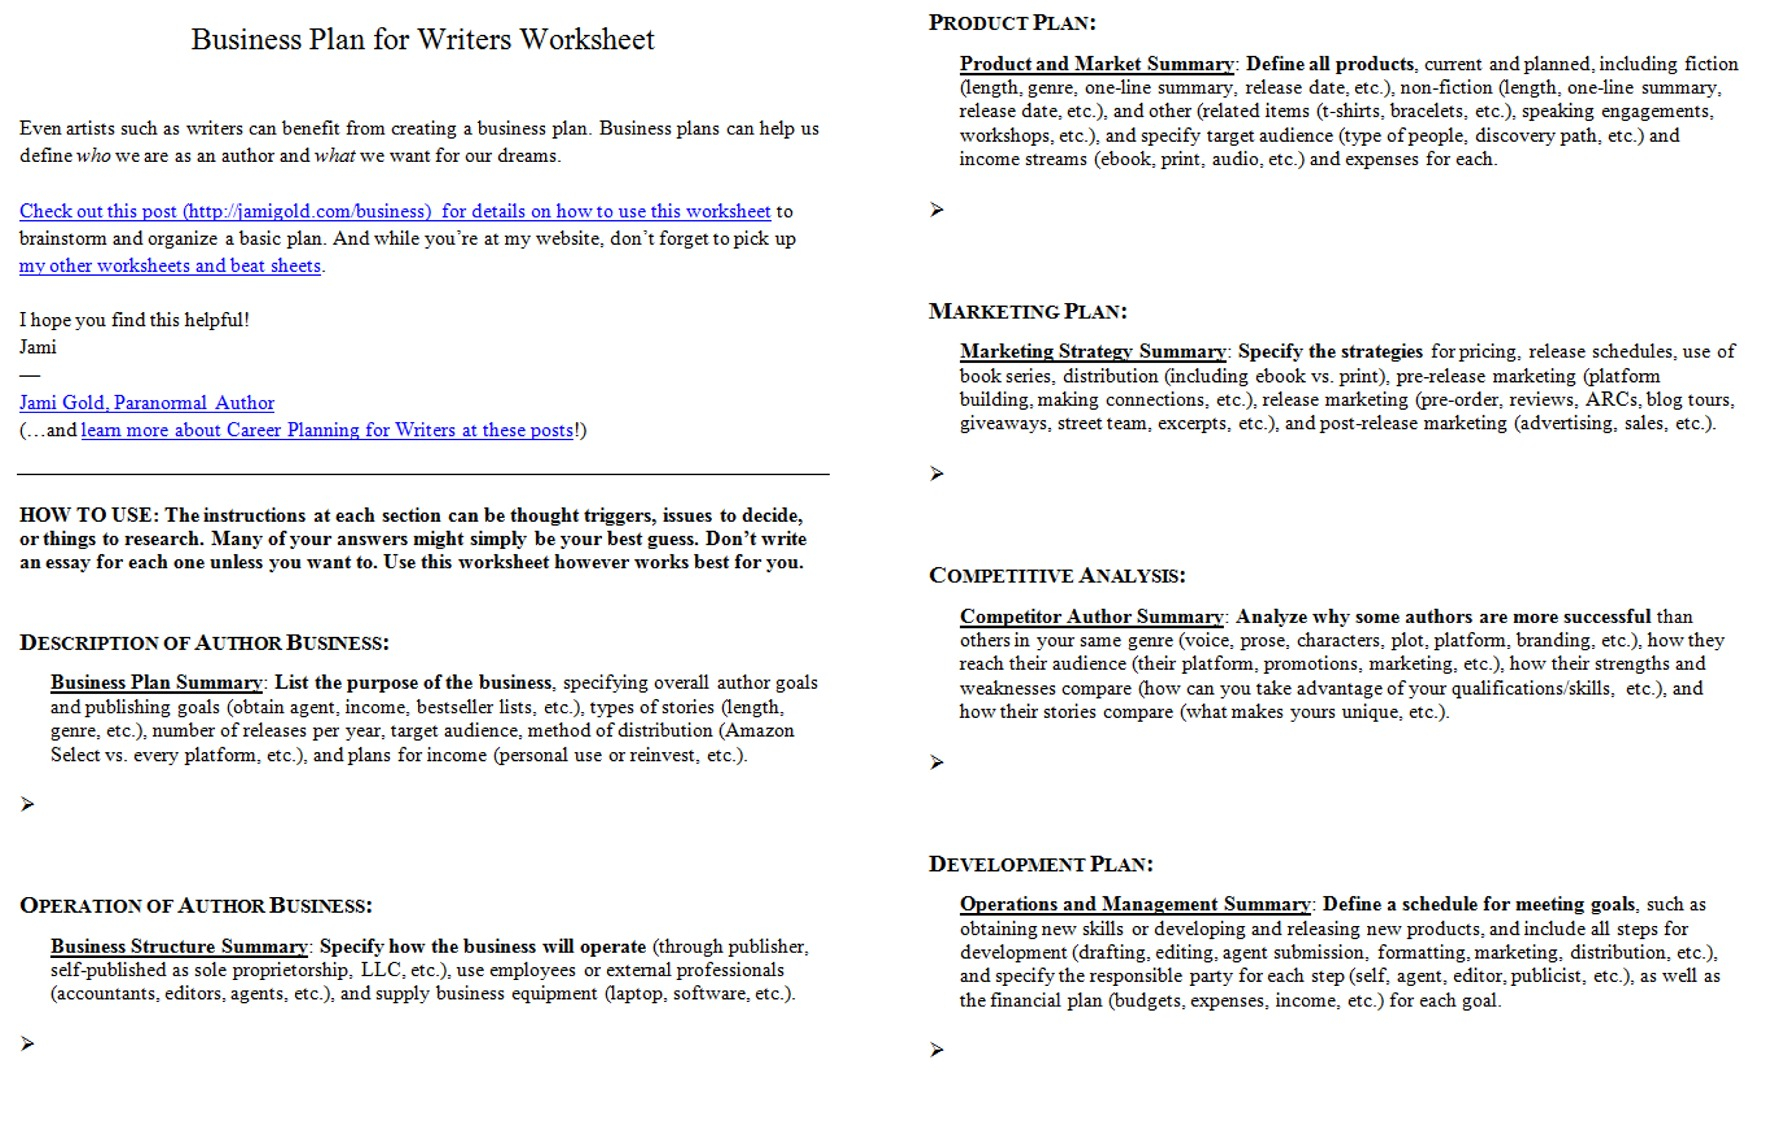 Weirdmailus  Personable Worksheets For Writers  Jami Gold Paranormal Author With Remarkable Screen Shot Of Both Pages Of The Business Plan For Writers Worksheet With Endearing Mixed Numbers Fractions Worksheet Also Shopping Worksheets For Students In Addition English Grammar Prepositions Worksheets And Super Teacher Worksheets Contractions As Well As Teaching Children To Read Worksheets Additionally Gcse Worksheets Science From Jamigoldcom With Weirdmailus  Remarkable Worksheets For Writers  Jami Gold Paranormal Author With Endearing Screen Shot Of Both Pages Of The Business Plan For Writers Worksheet And Personable Mixed Numbers Fractions Worksheet Also Shopping Worksheets For Students In Addition English Grammar Prepositions Worksheets From Jamigoldcom